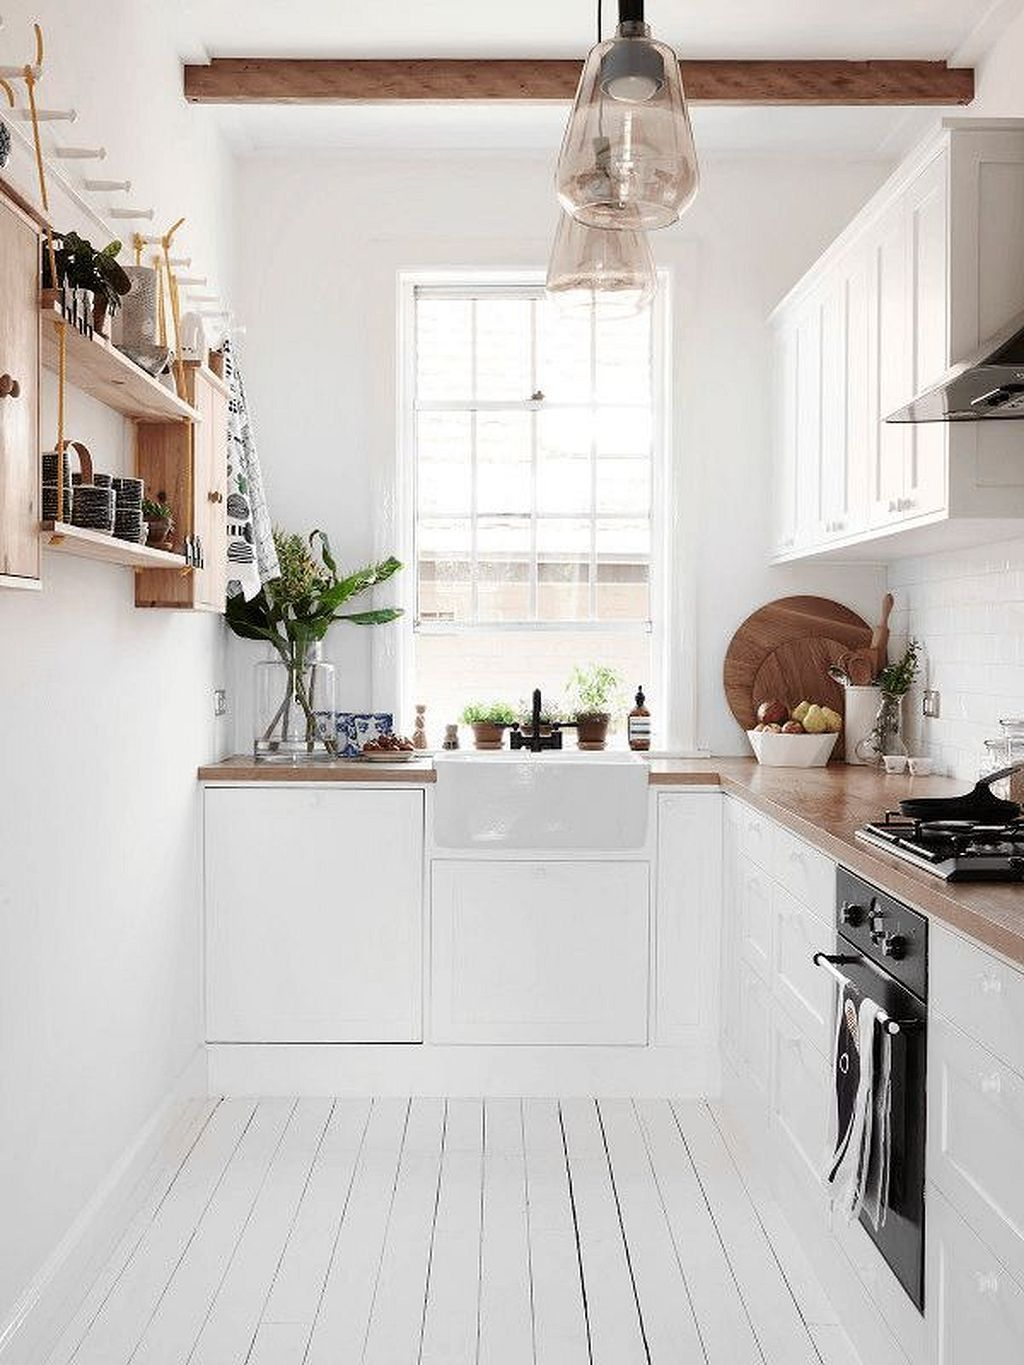 Inspiration For Your Own Tiny House With Small Kitchen Space(50) #smallkitchendecor